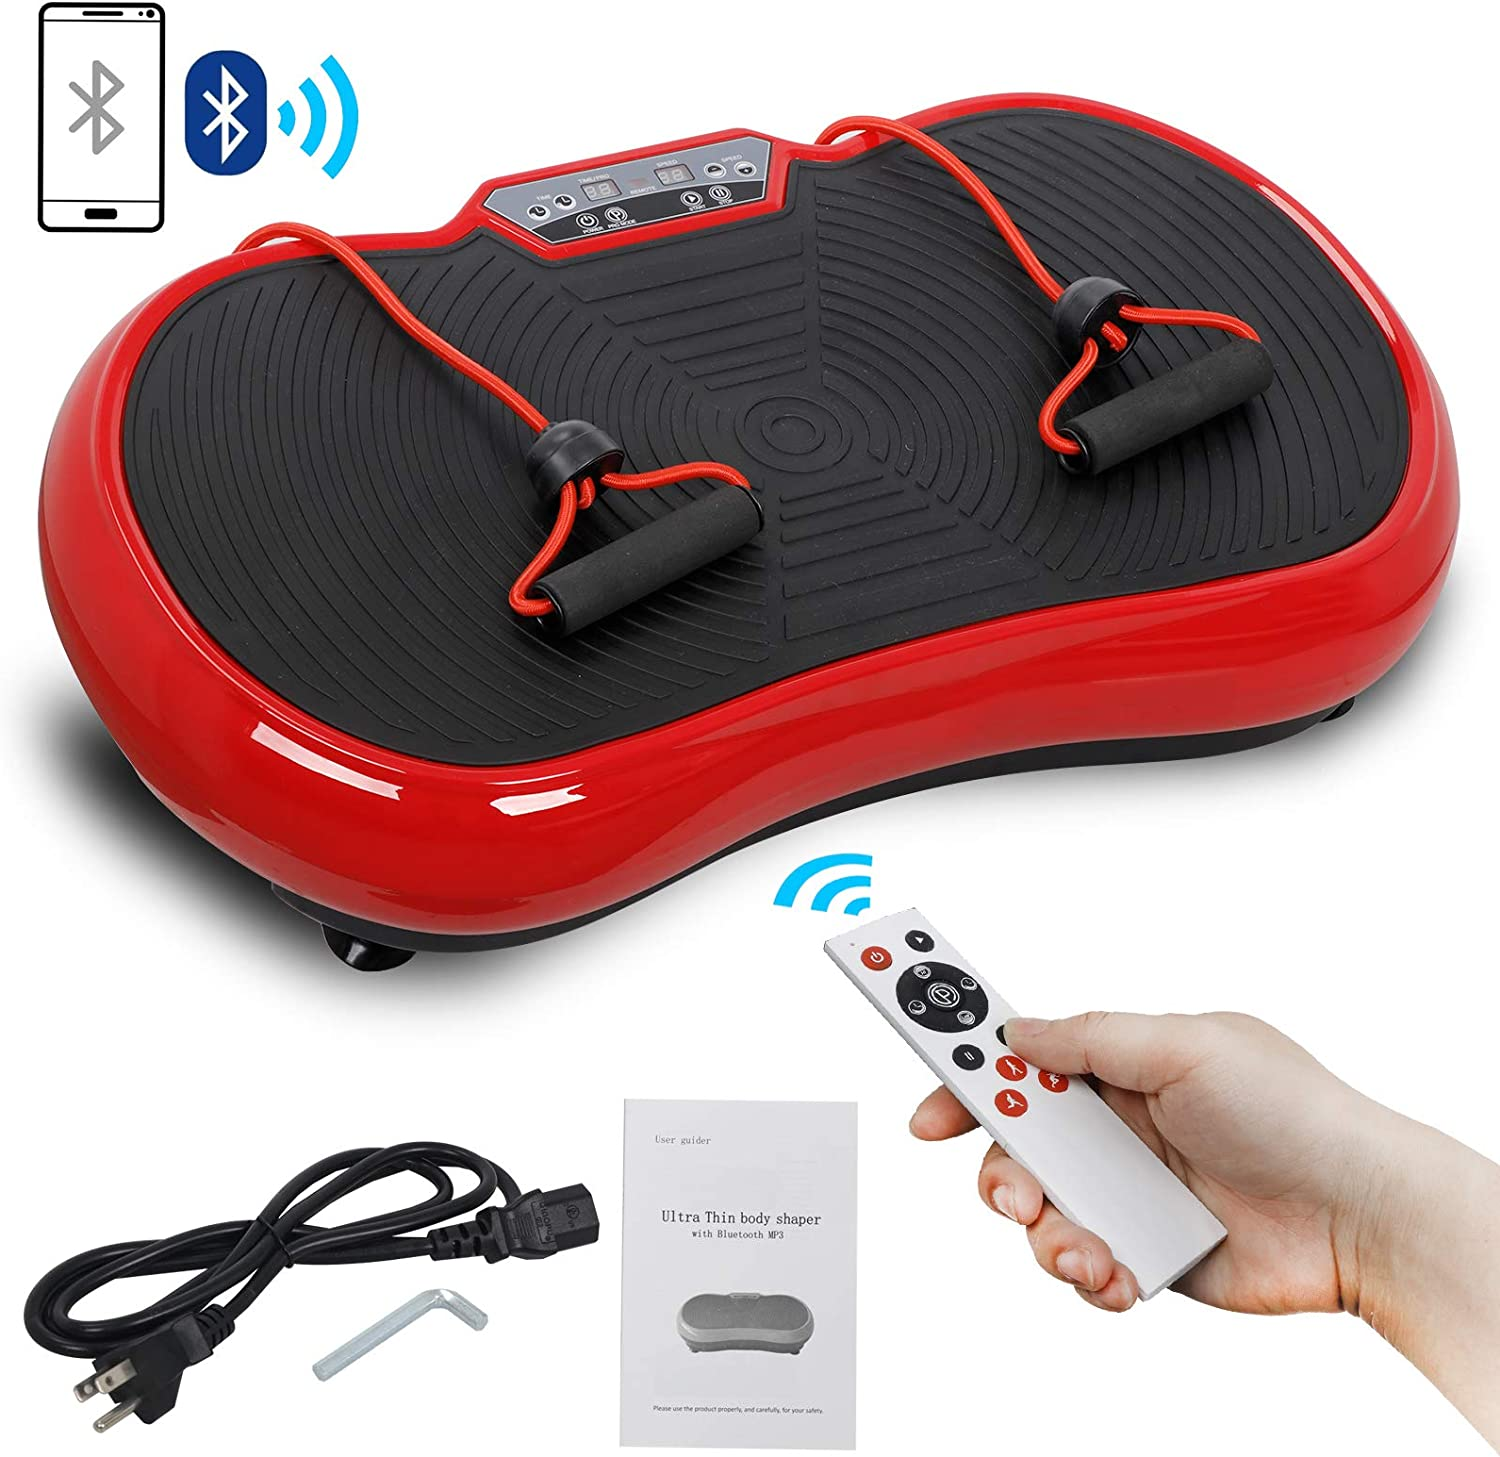 Whole Body Workout Vibration Fitness Platform Fit Massage Workout Trainer with Bluetooth Remote 99 Levels KAB Ship from US-Pro Vibration Plate Exercise Machine